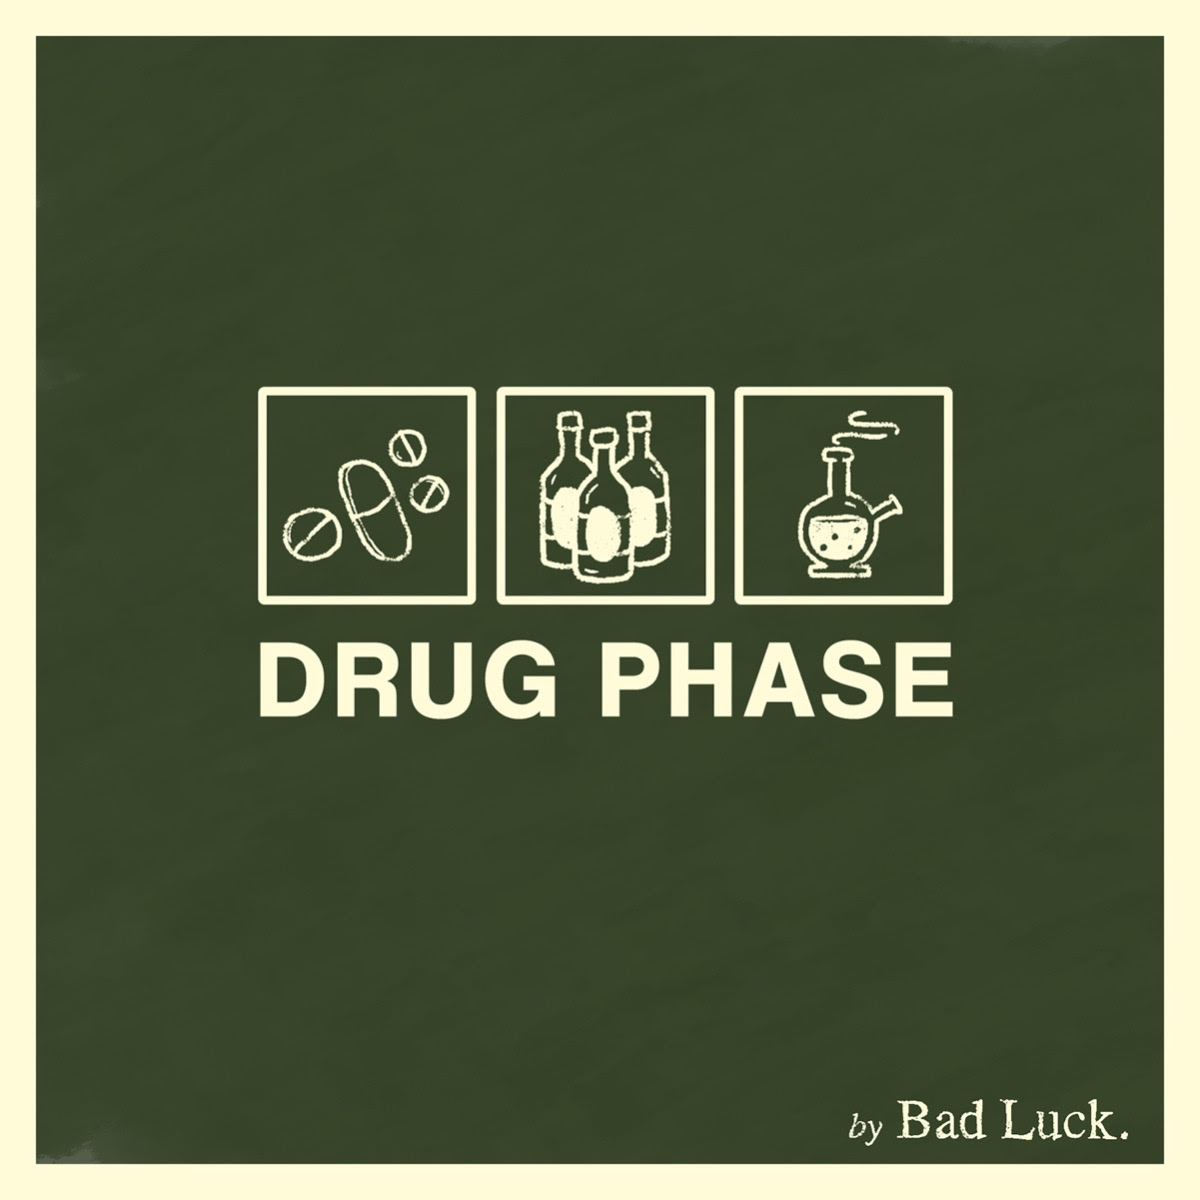 Bad-Luck-Drug-Phase.jpg